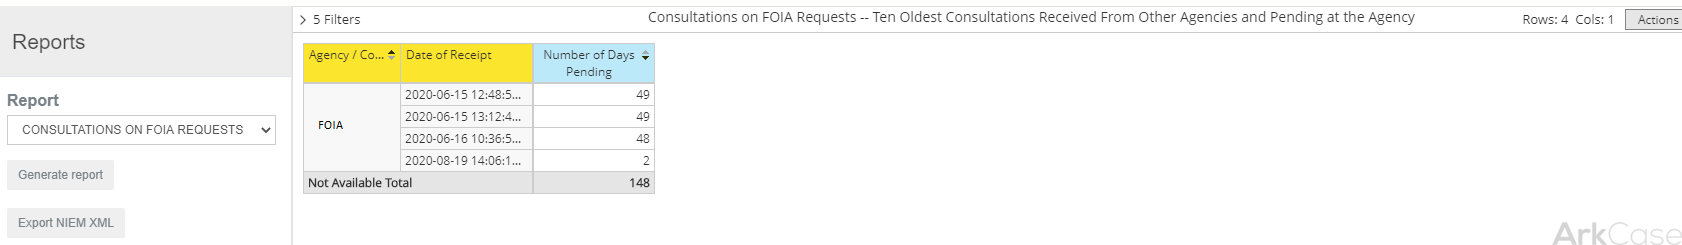 Consultations on FOIA Requests -- Ten Oldest Consultations Received From Other Agencies and Pending at the Agency